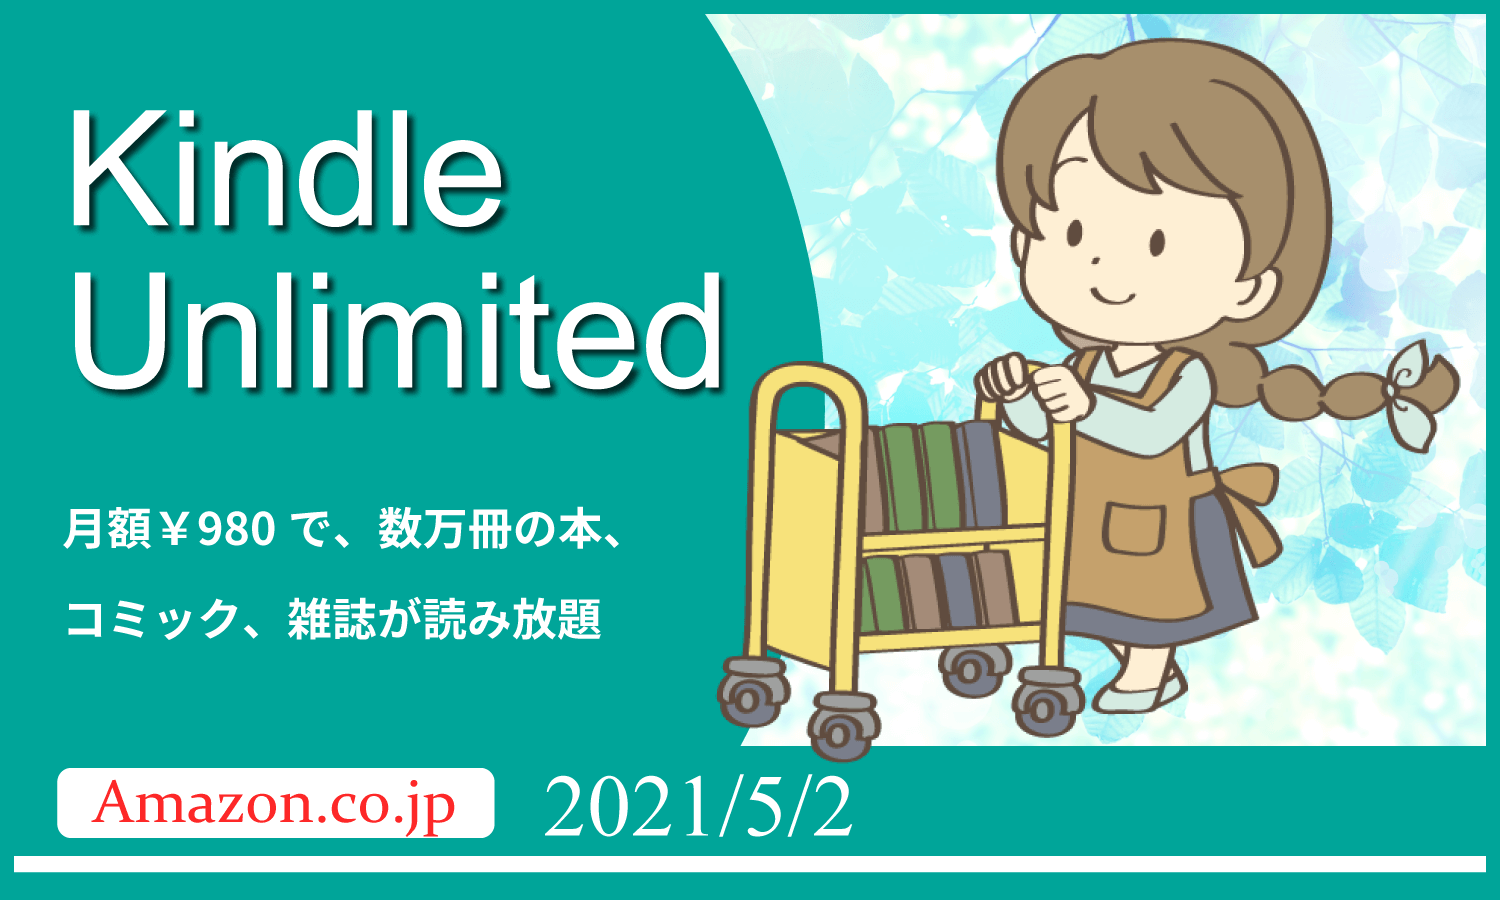 「Kindle Unlimited」で良書を探してみた 2021年5月